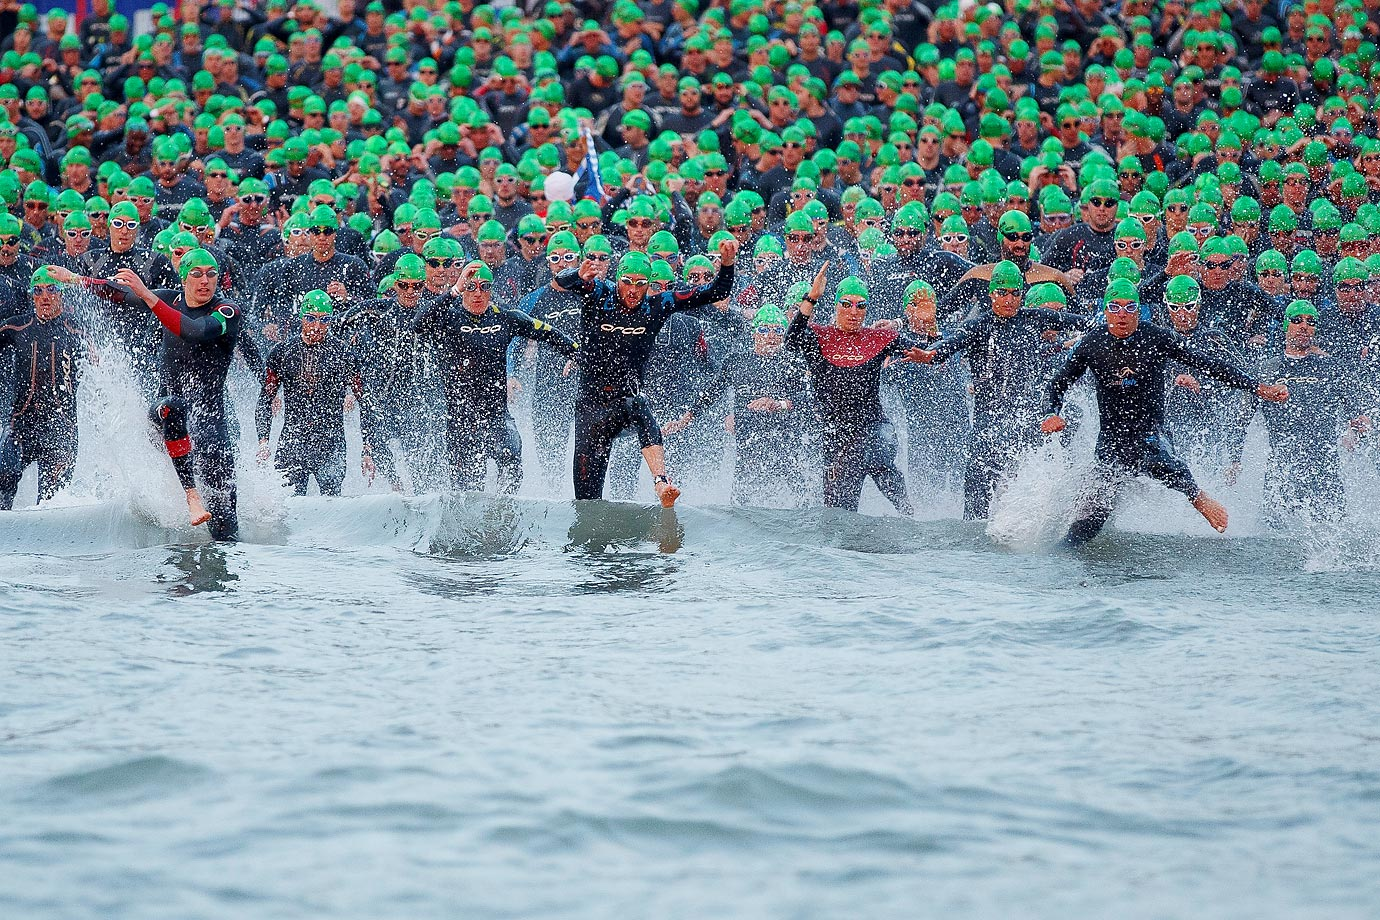 Athletes compete in the Ironman Wales on Sept. 14.